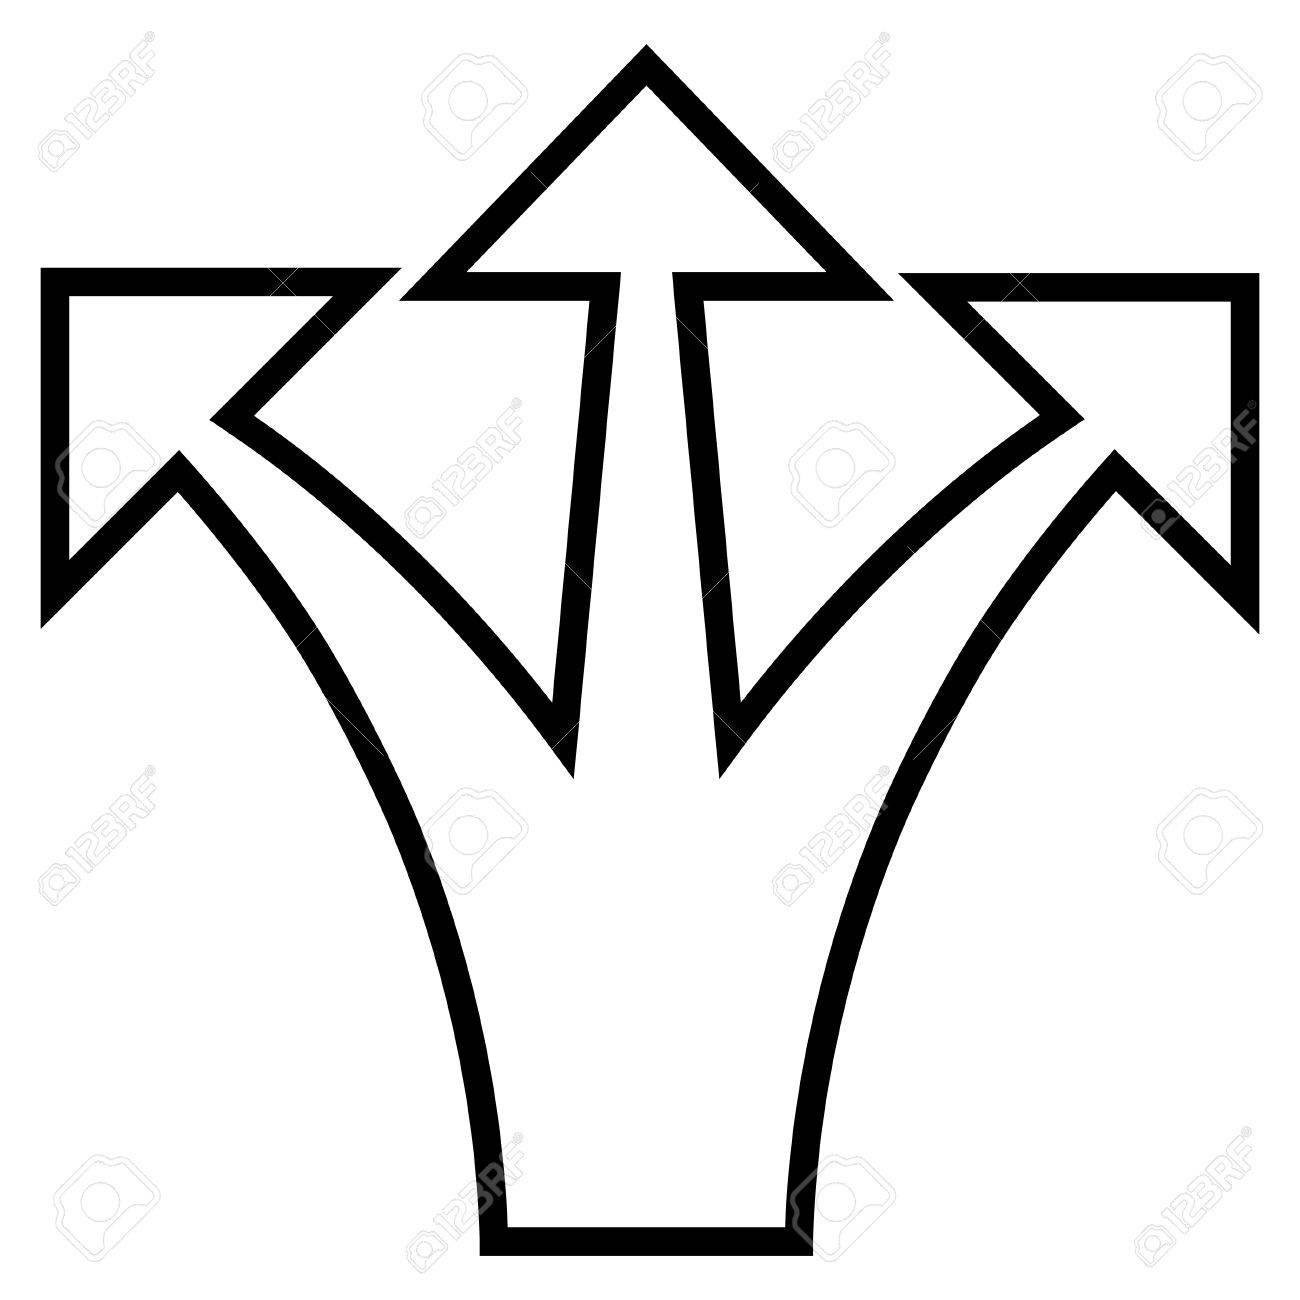 Arrow Up Symbol Choice Image - meaning of text symbols